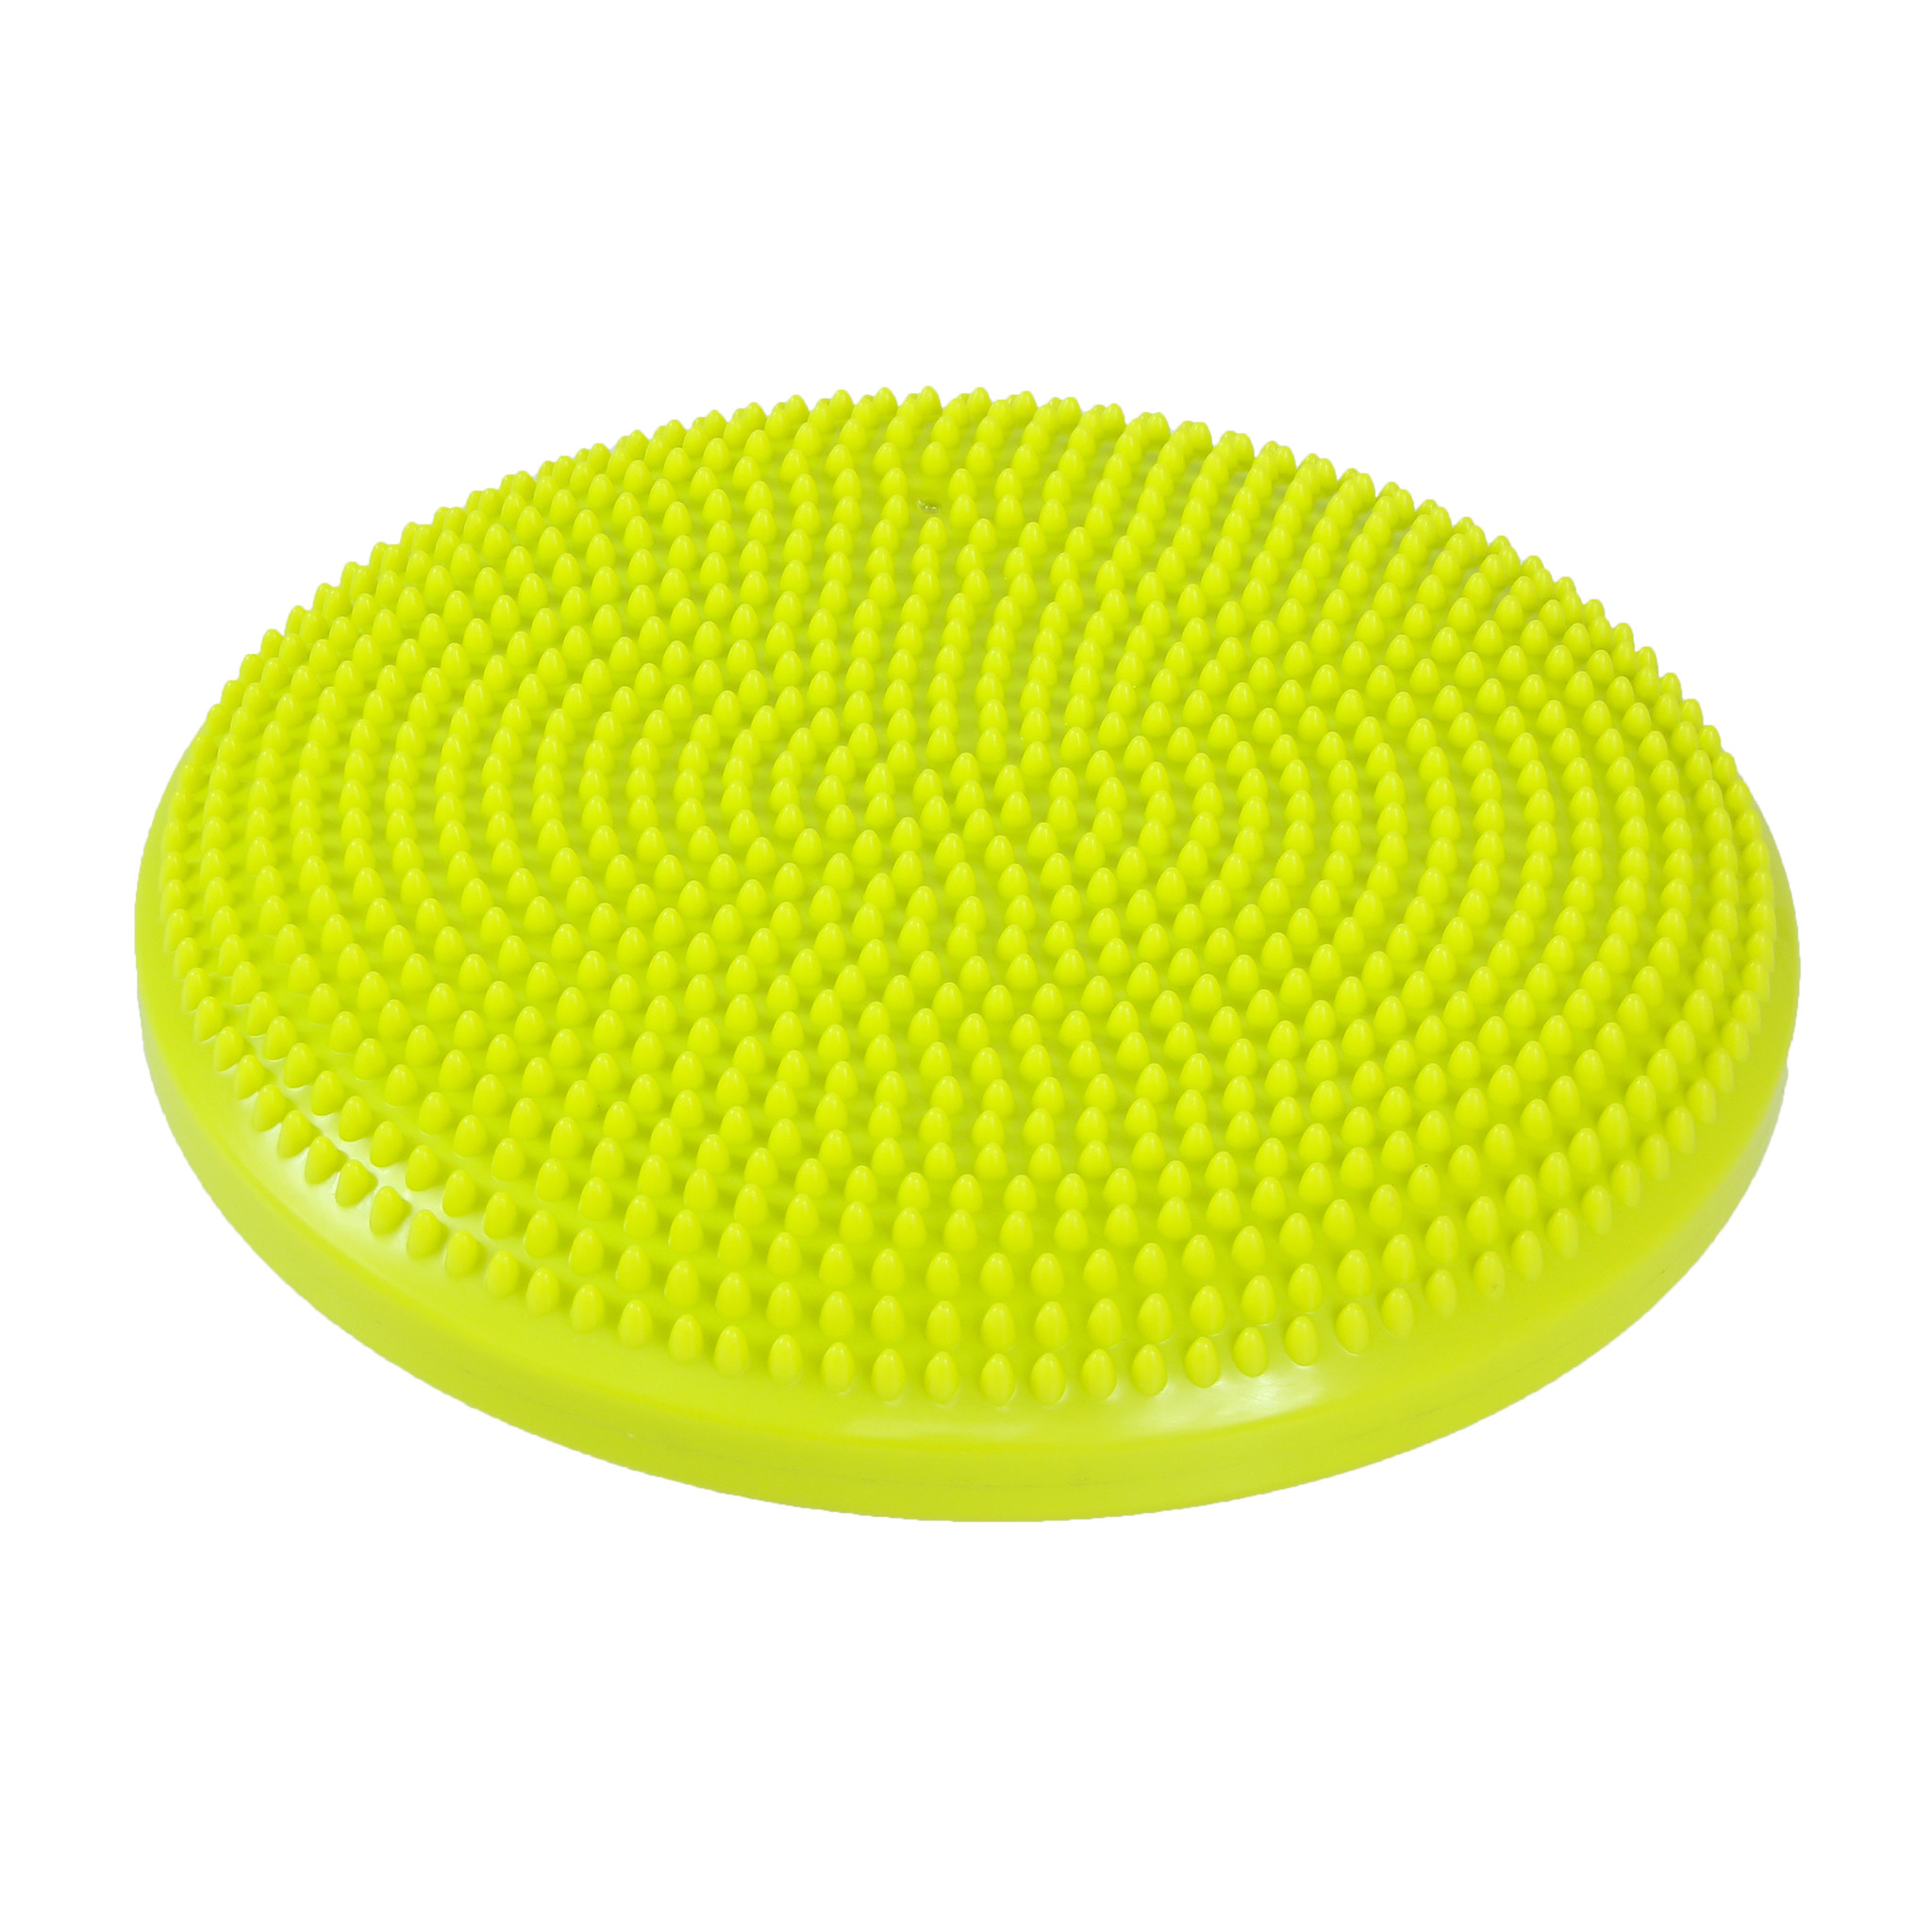 LMX.® LMX1605 LMX. Air stability disc dia.33cm (yellow)